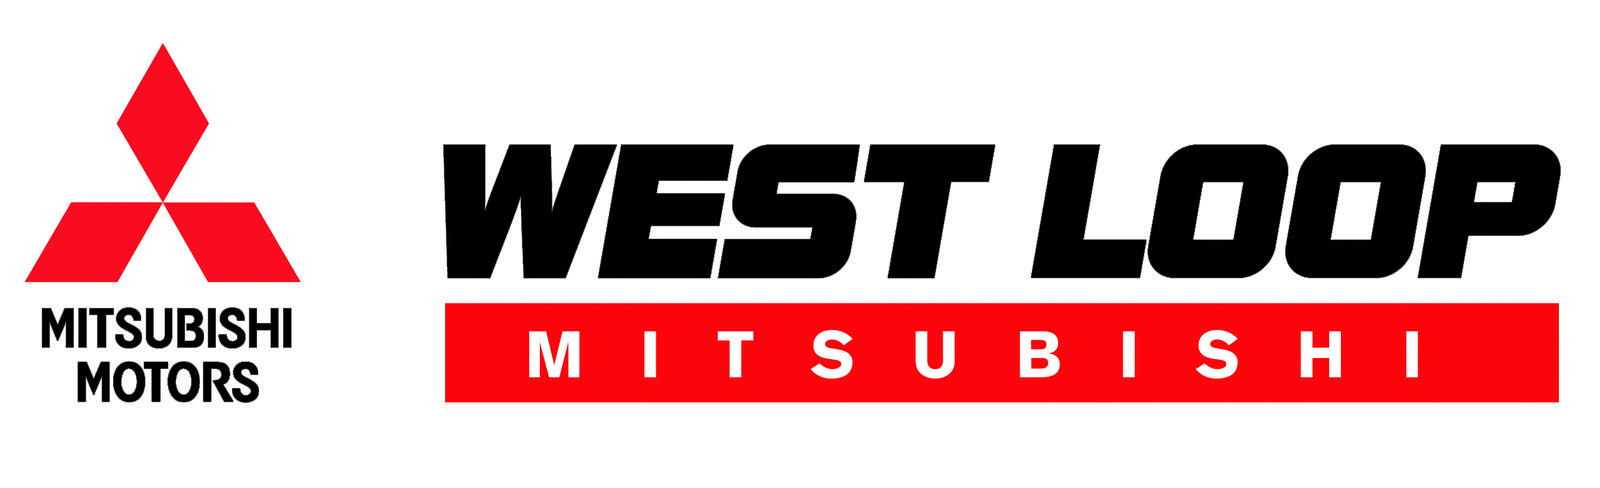 West Loop Mitsubishi San Antonio Tx >> West Loop Mitsubishi San Antonio Tx Read Consumer Reviews